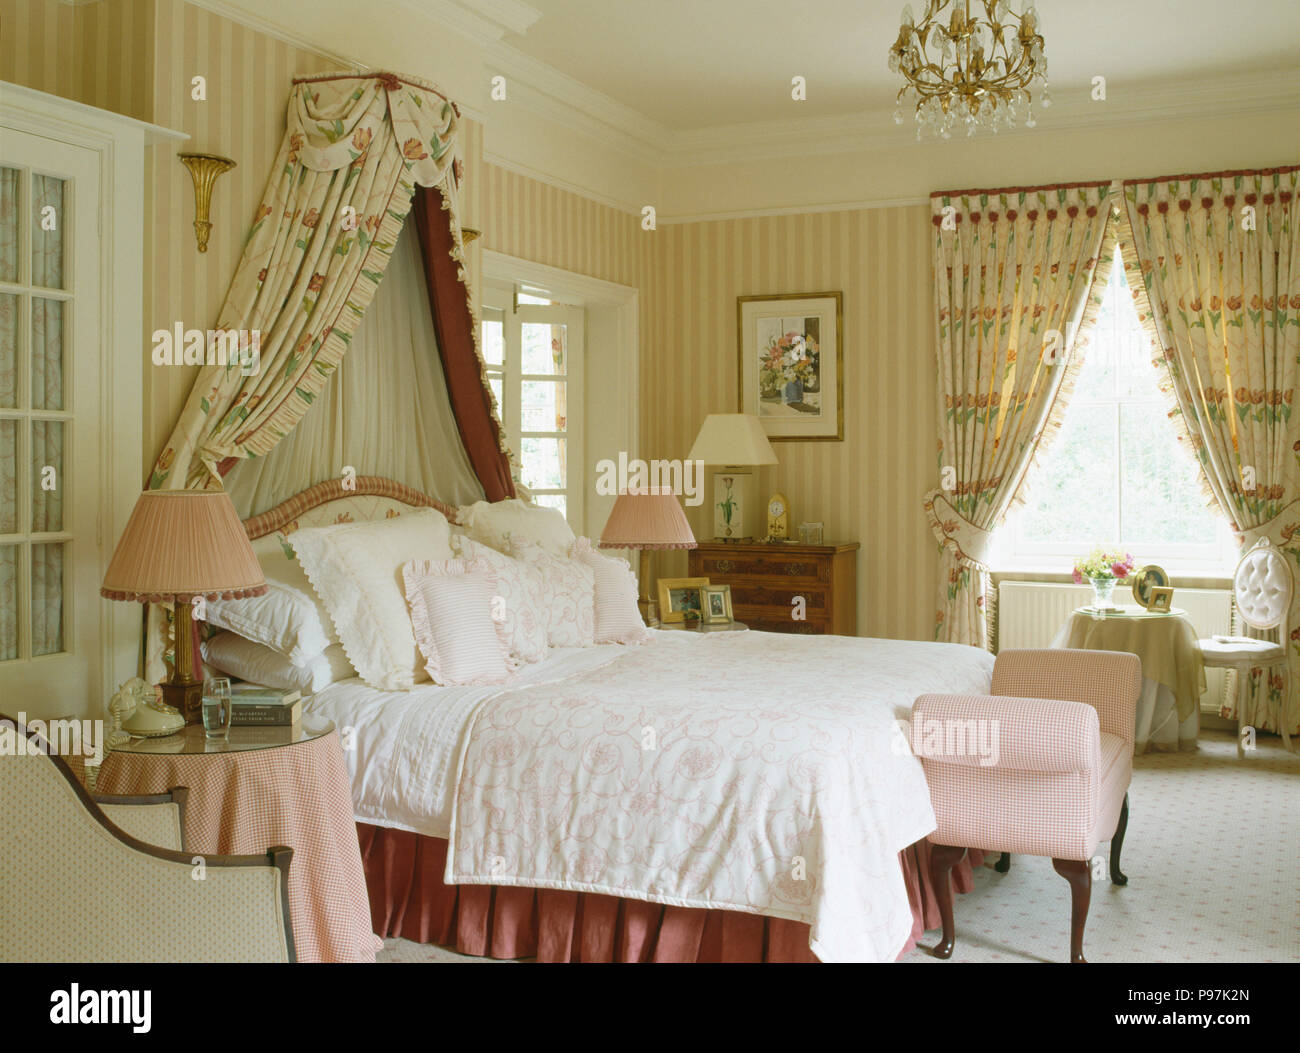 Coronet With Floral Drapes Above Bed Piled With Cushions In Country